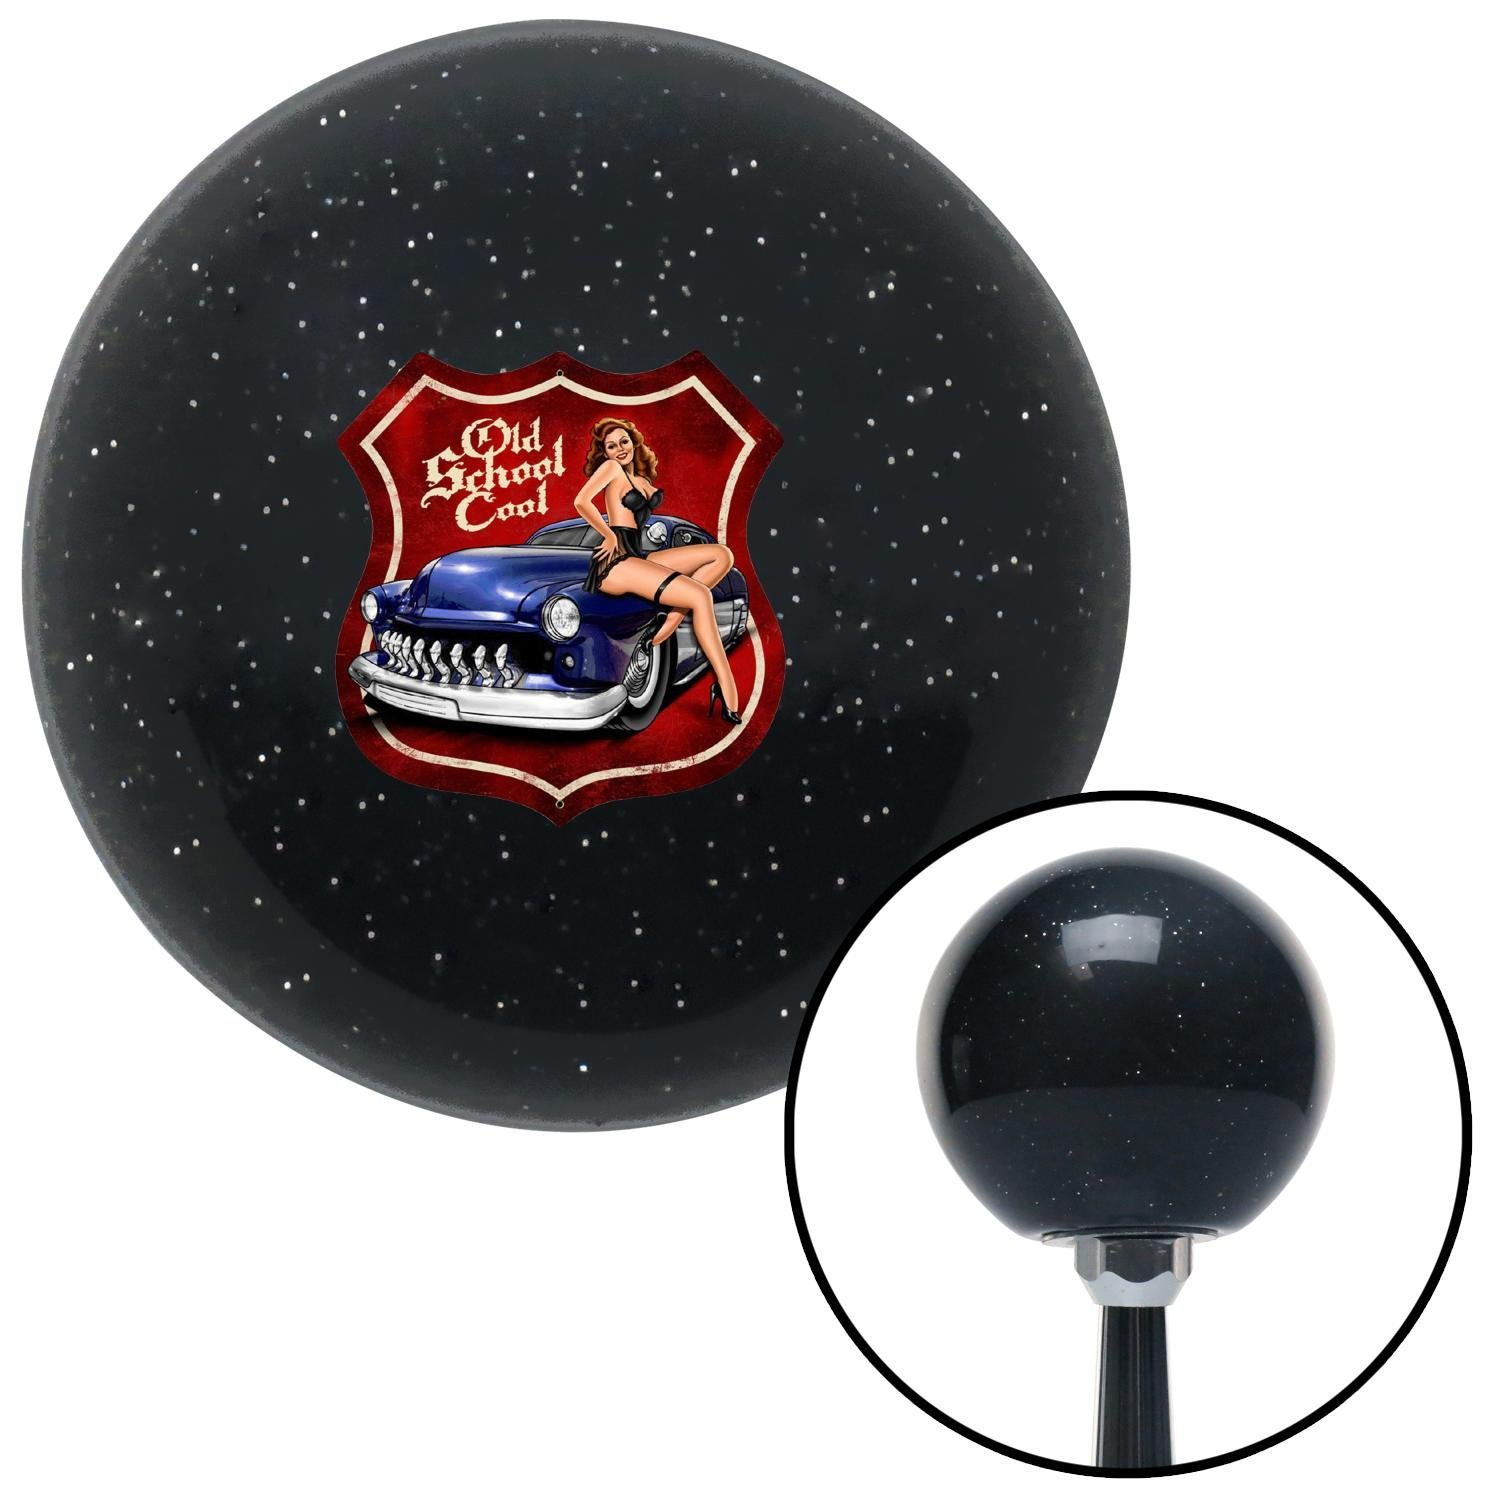 American Shifter 77371 Black Metal Flake Shift Knob with M16 x 1.5 Insert Old School Cool